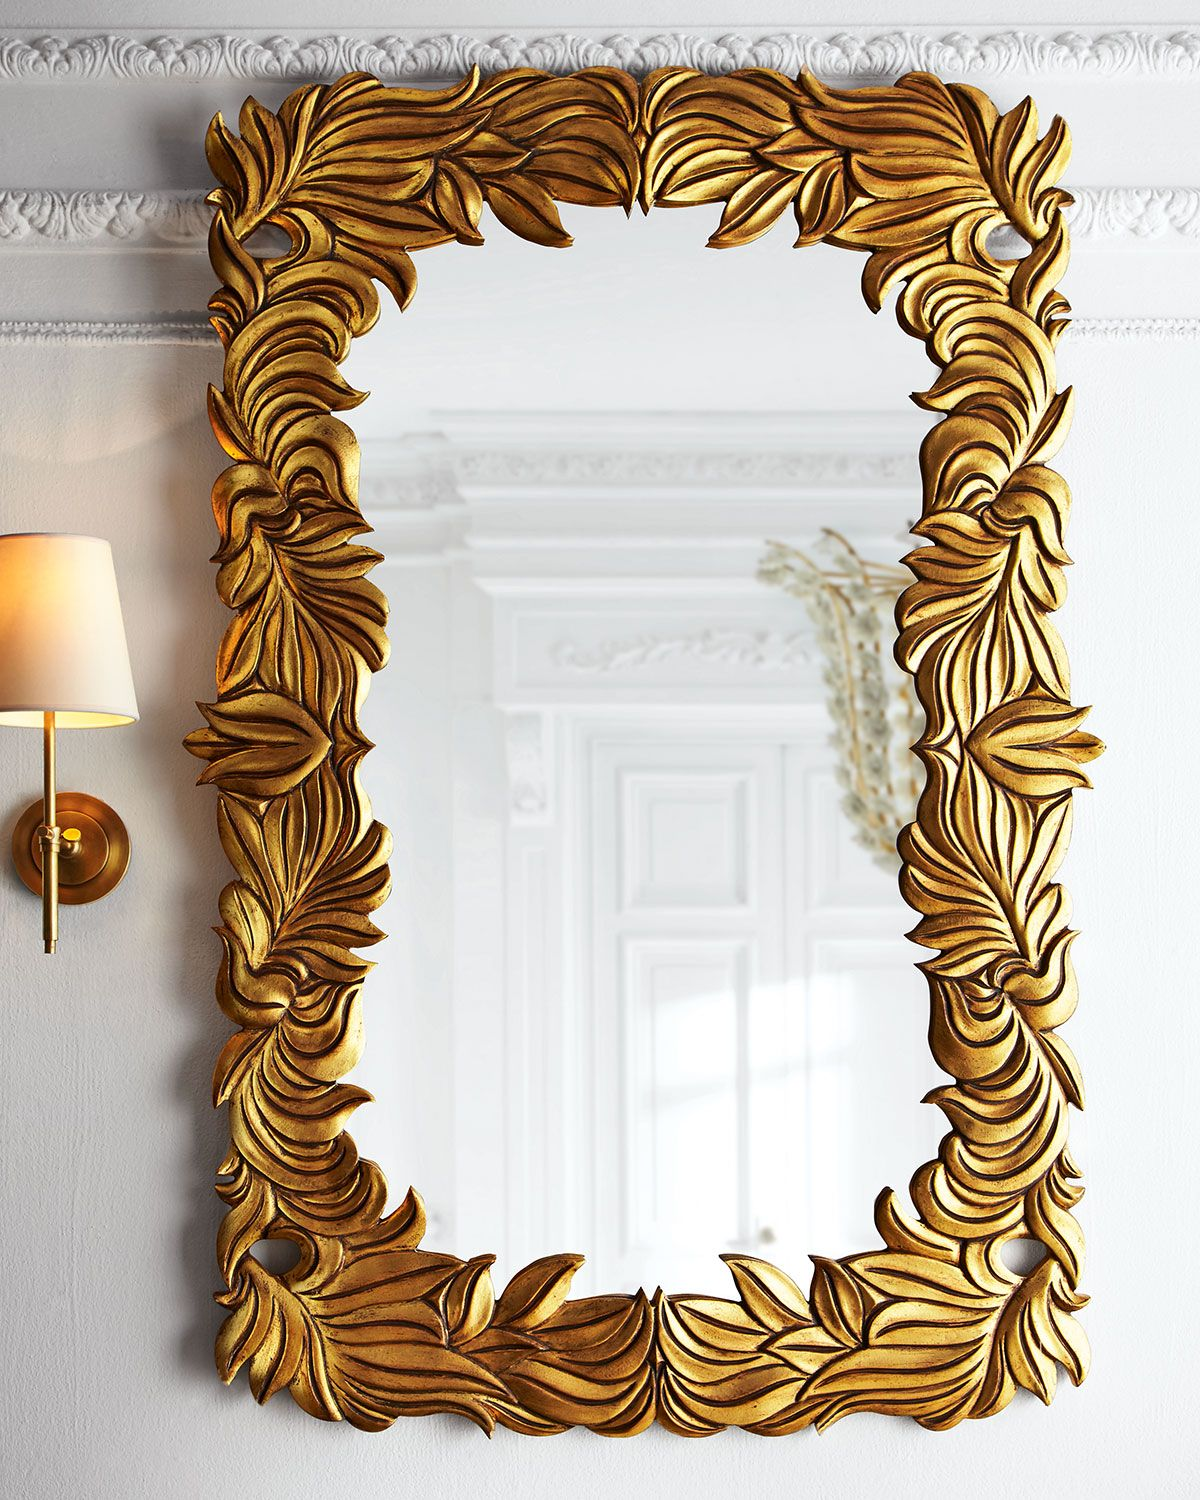 Luxury Home Decor Accents Mirrors More At Horchow: Mirror, Home Decor